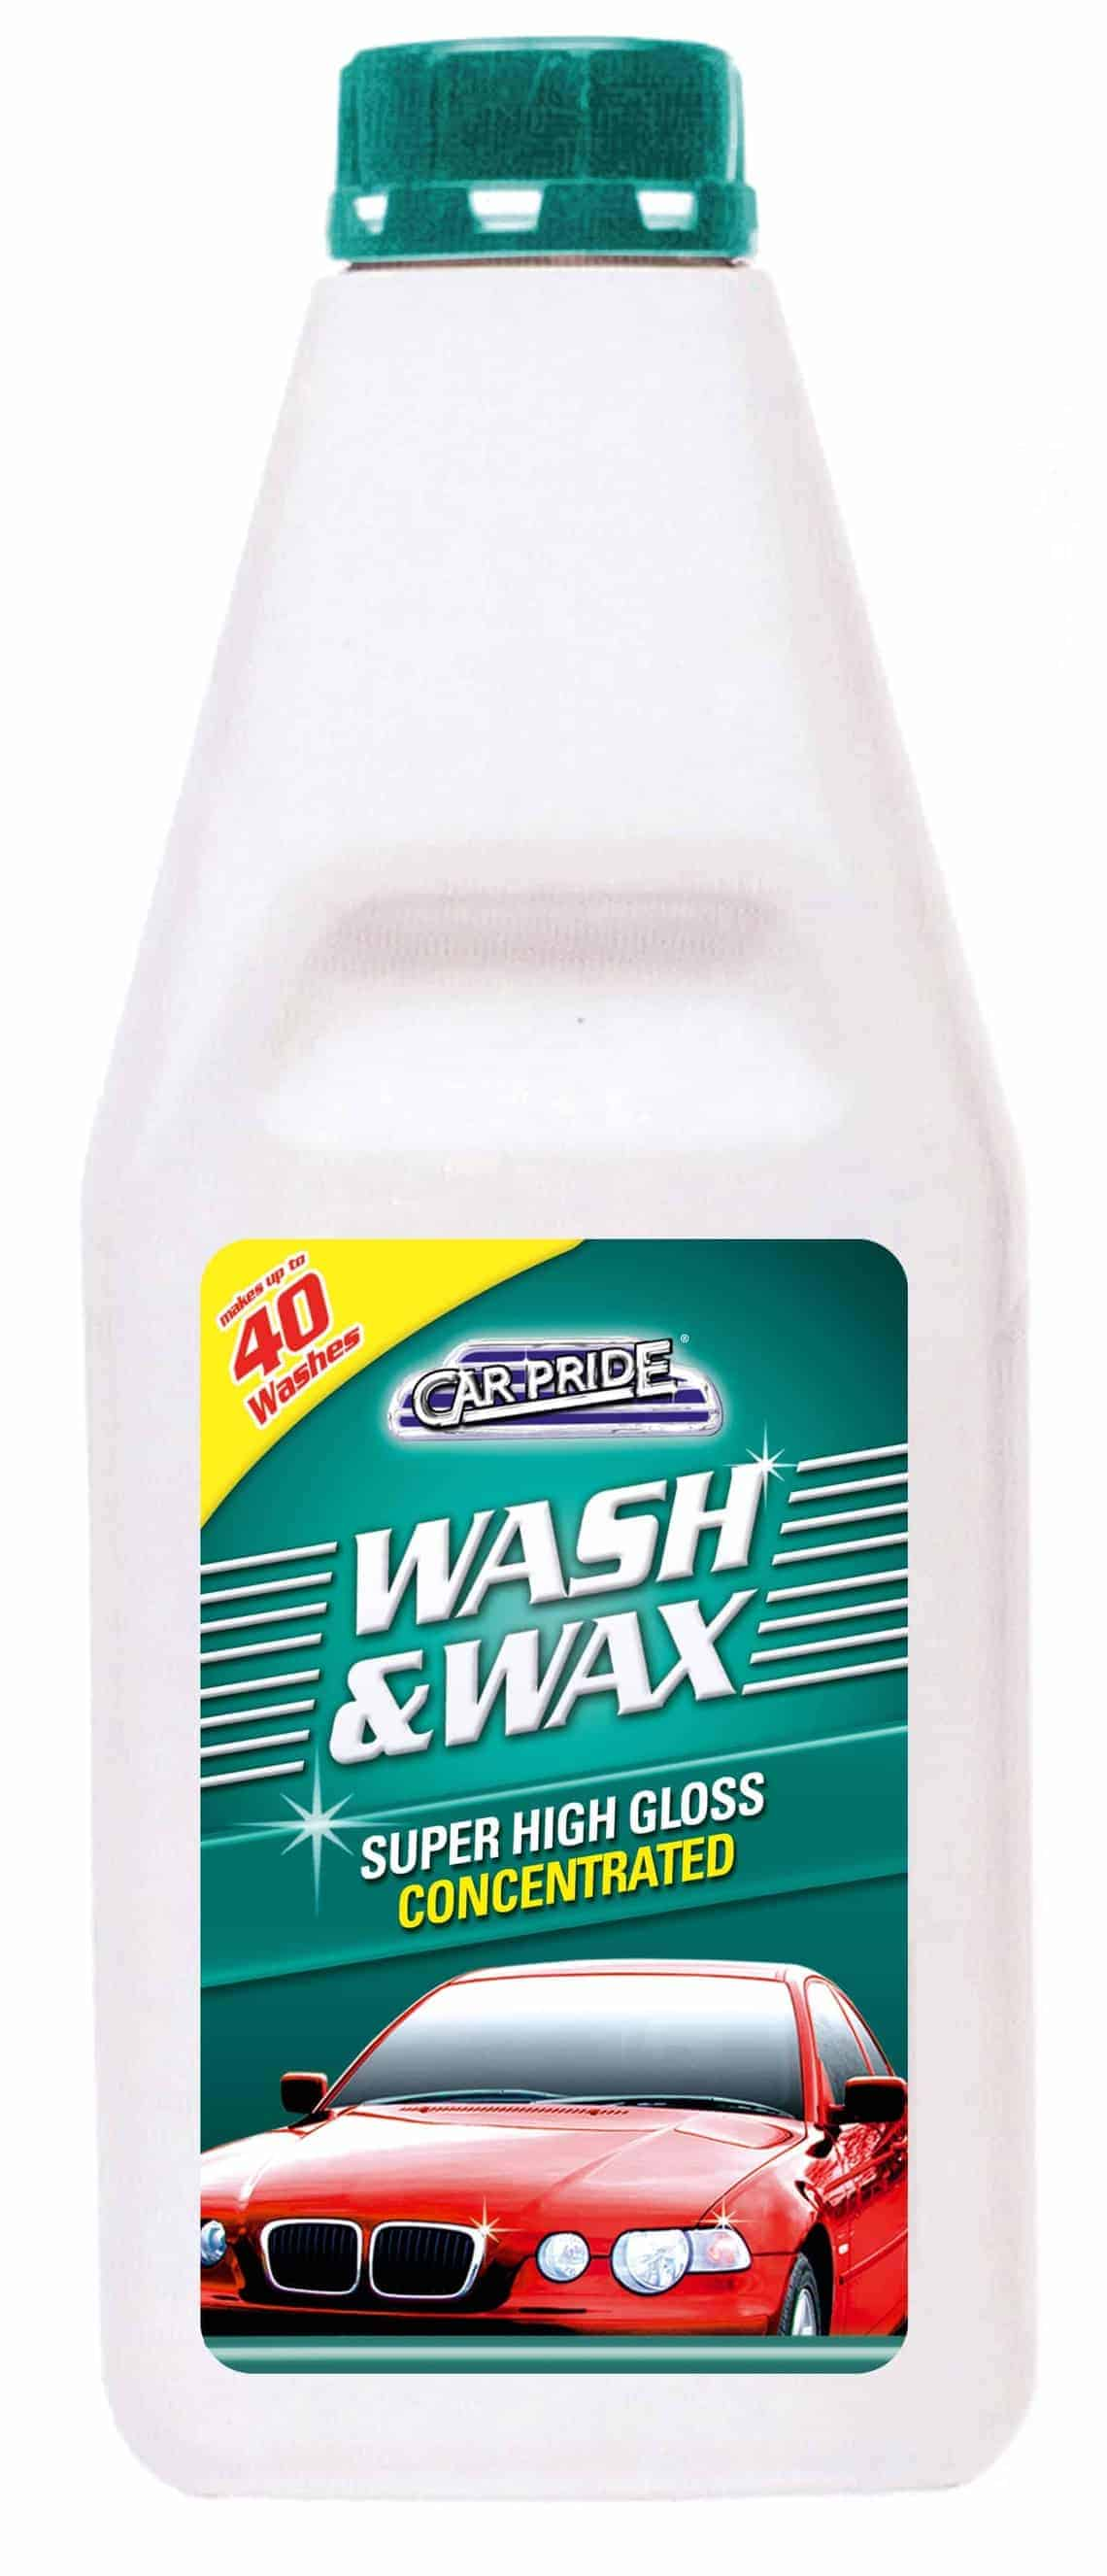 Carpride 1ltr Wash & Wax